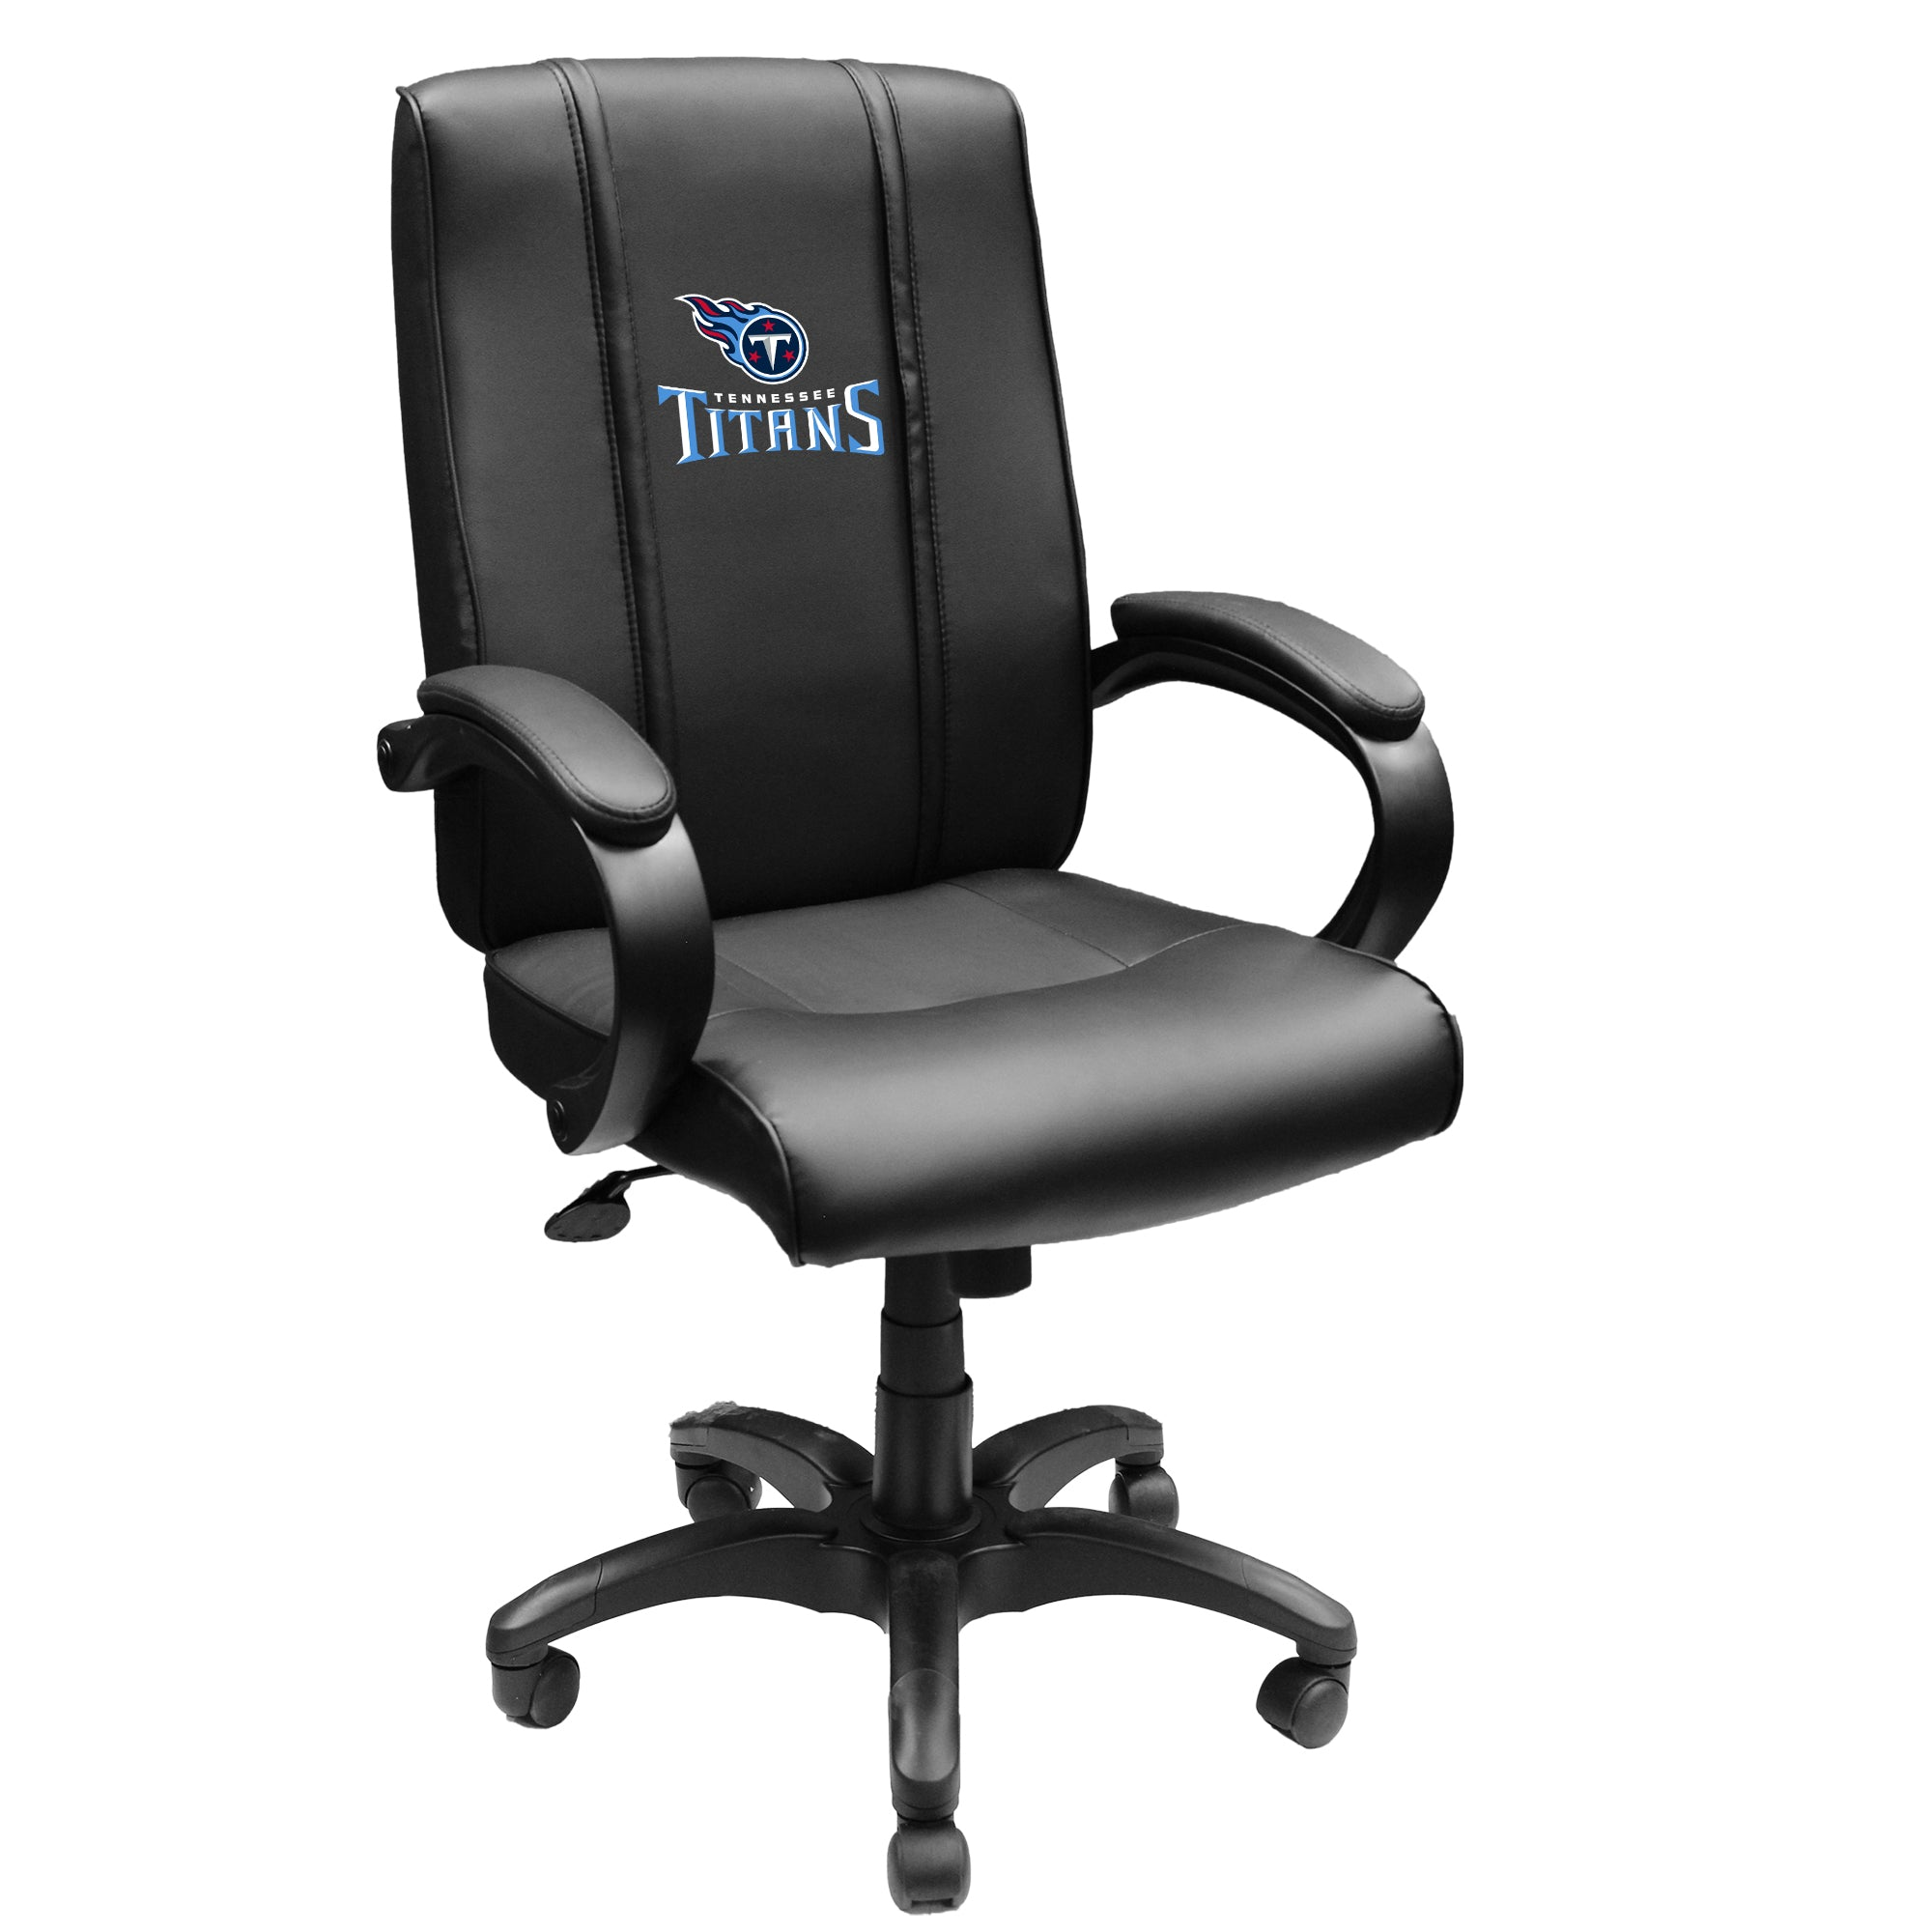 Office Chair 1000 with  Tennessee Titans Secondary Logo